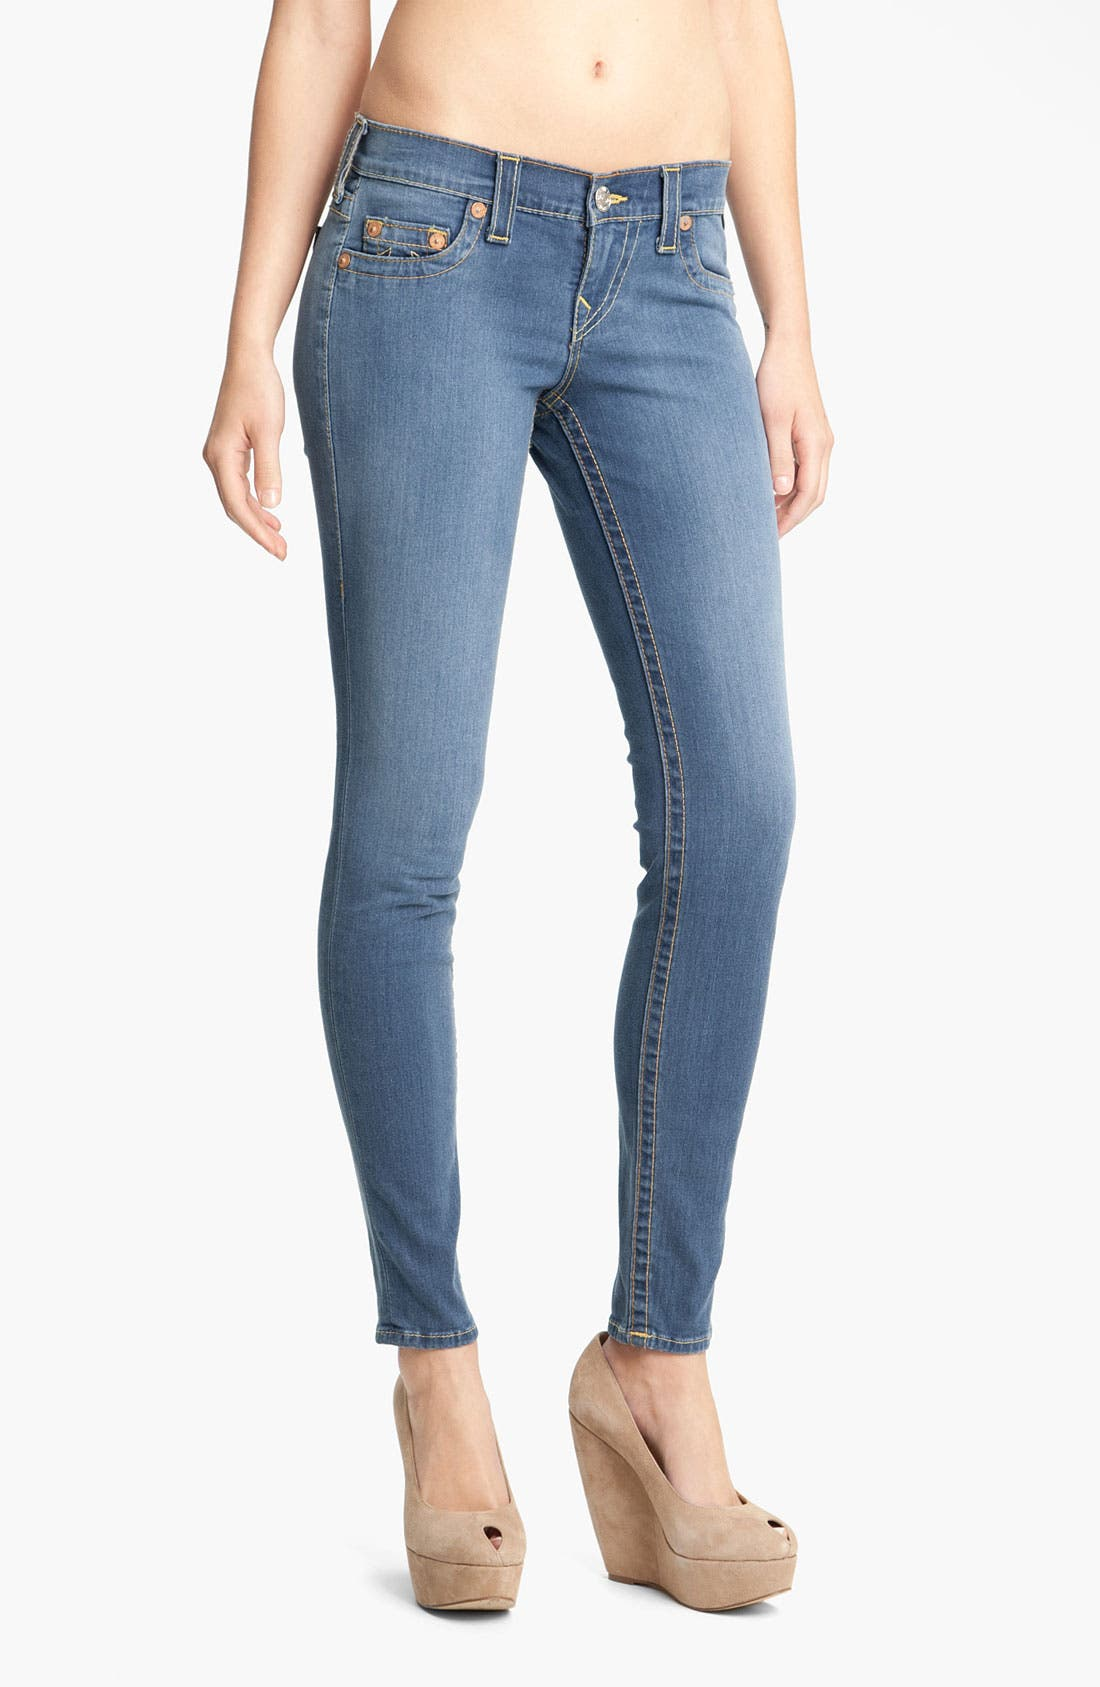 Main Image - True Religion Brand Jeans 'Casey' Skinny Stretch Jeans (Stingray)